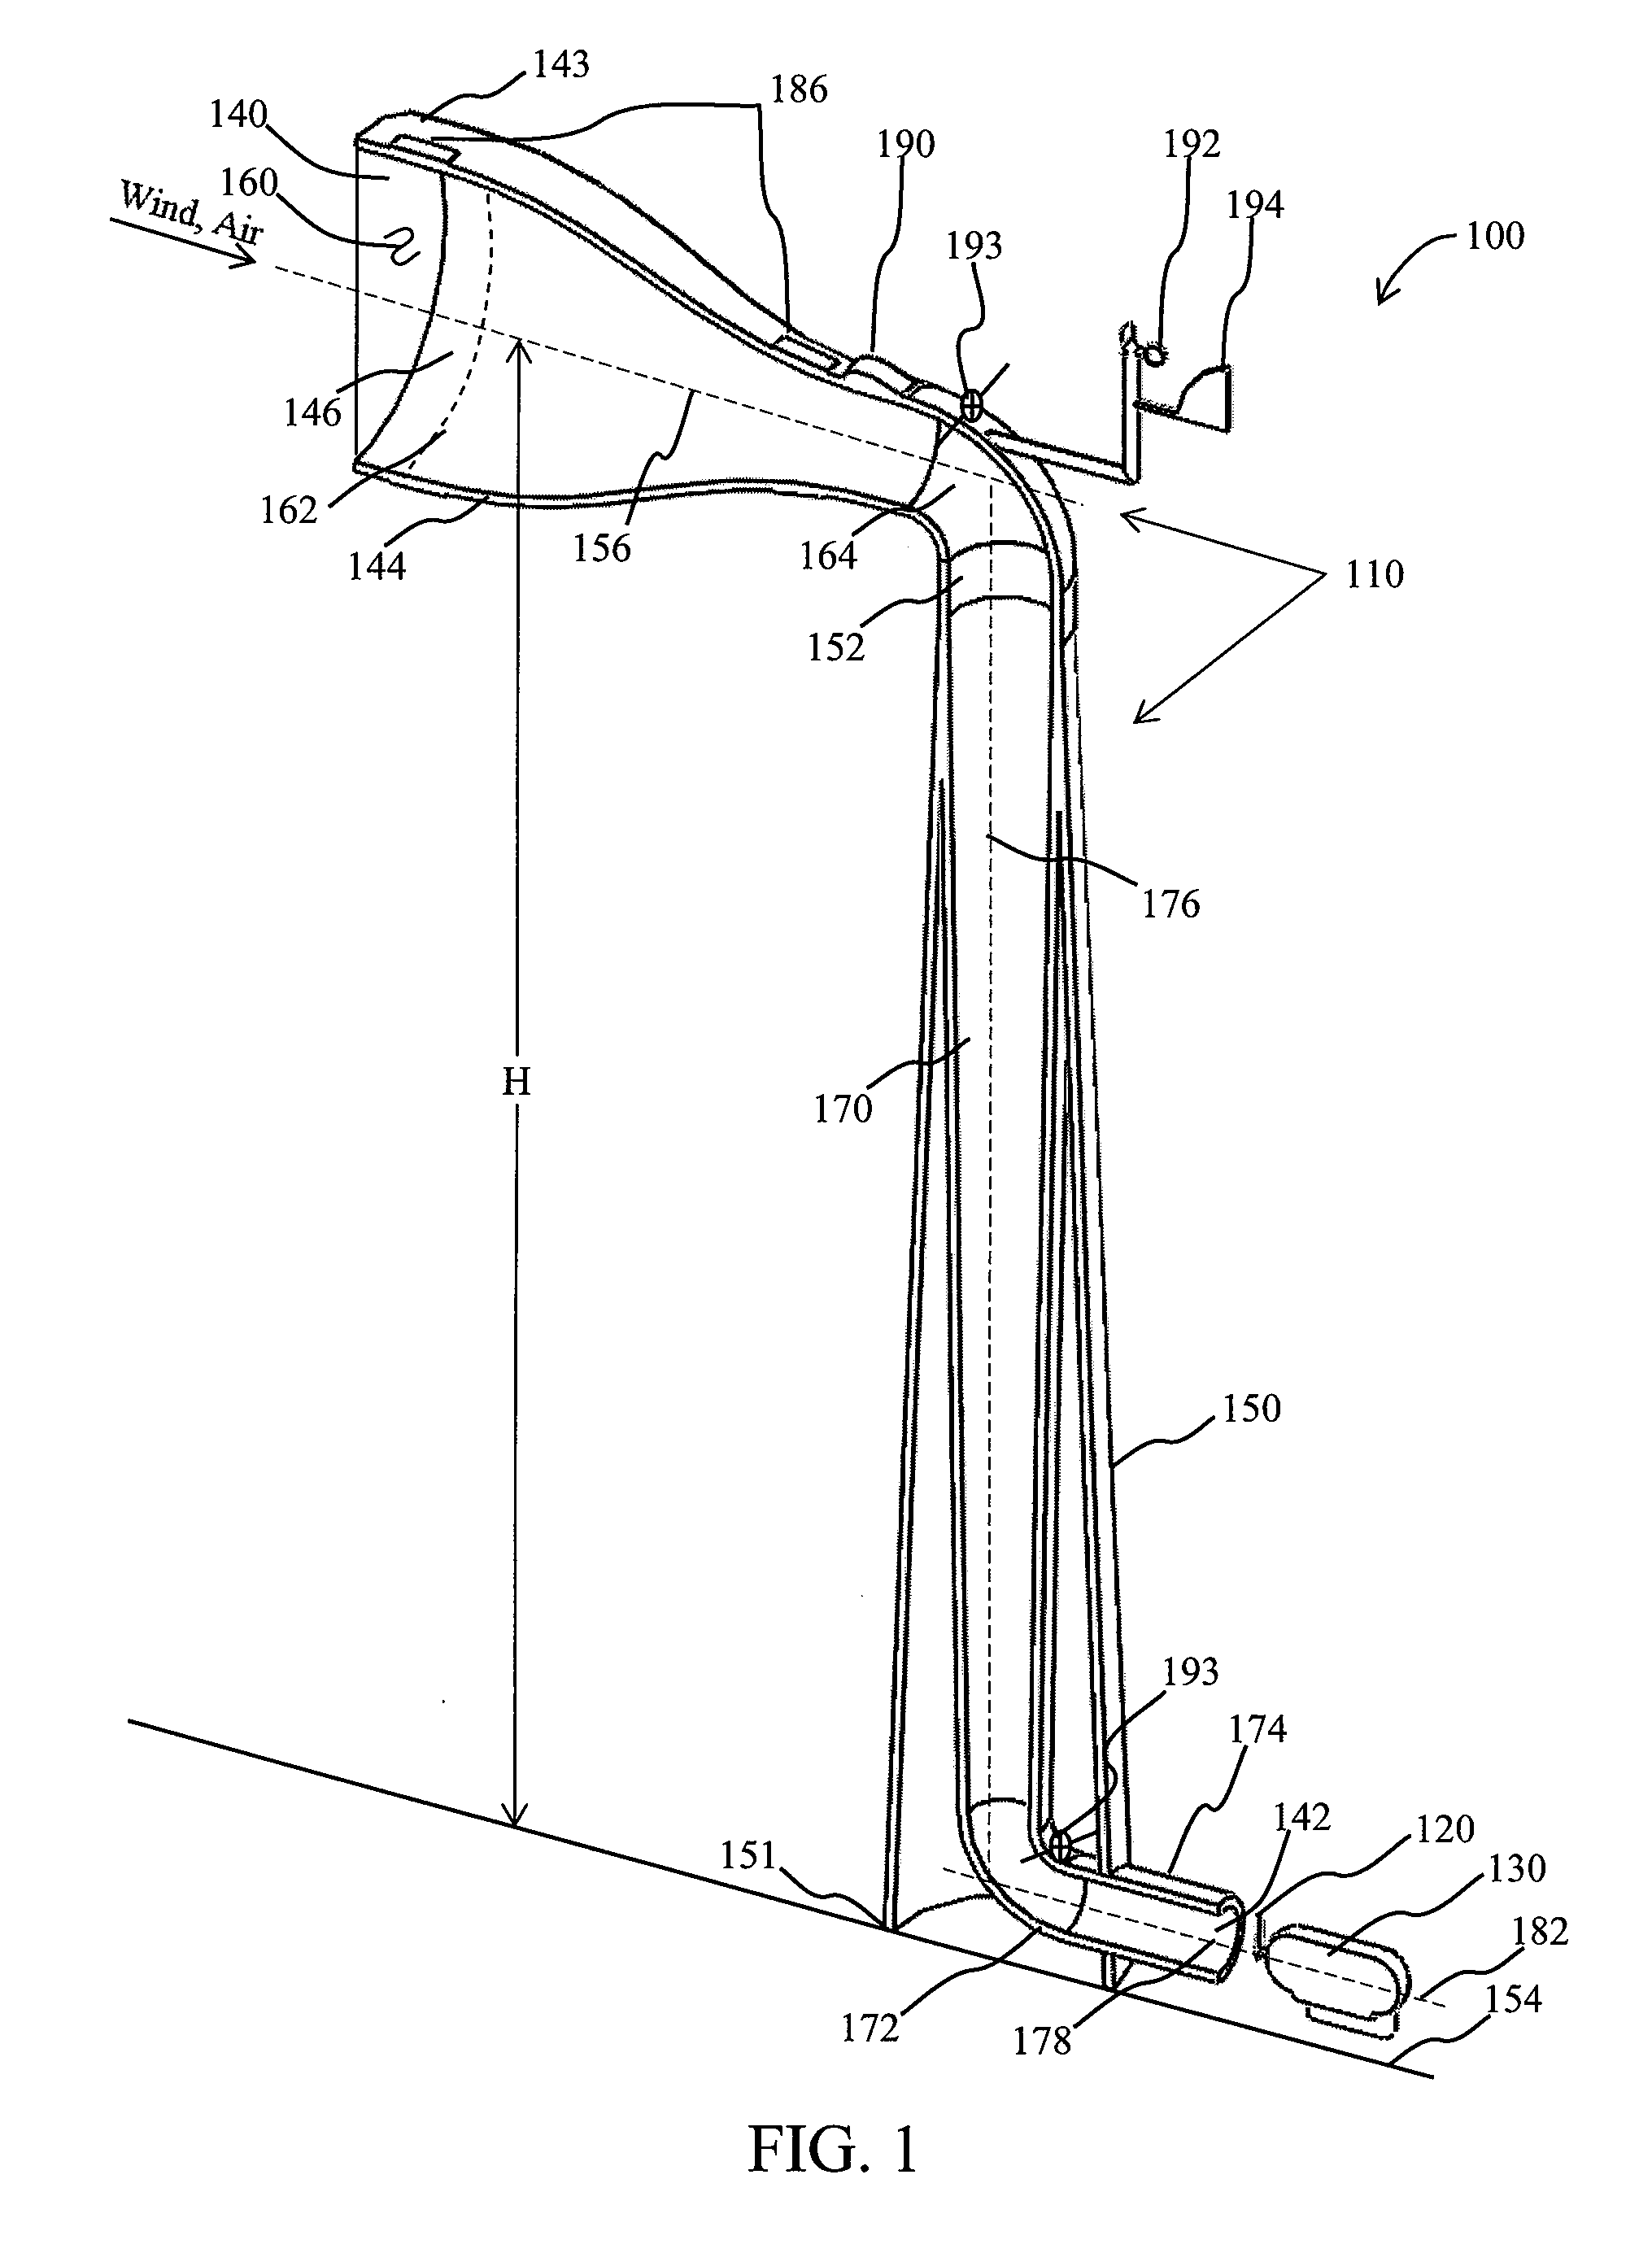 Patent US Turbine intake tower for wind energy